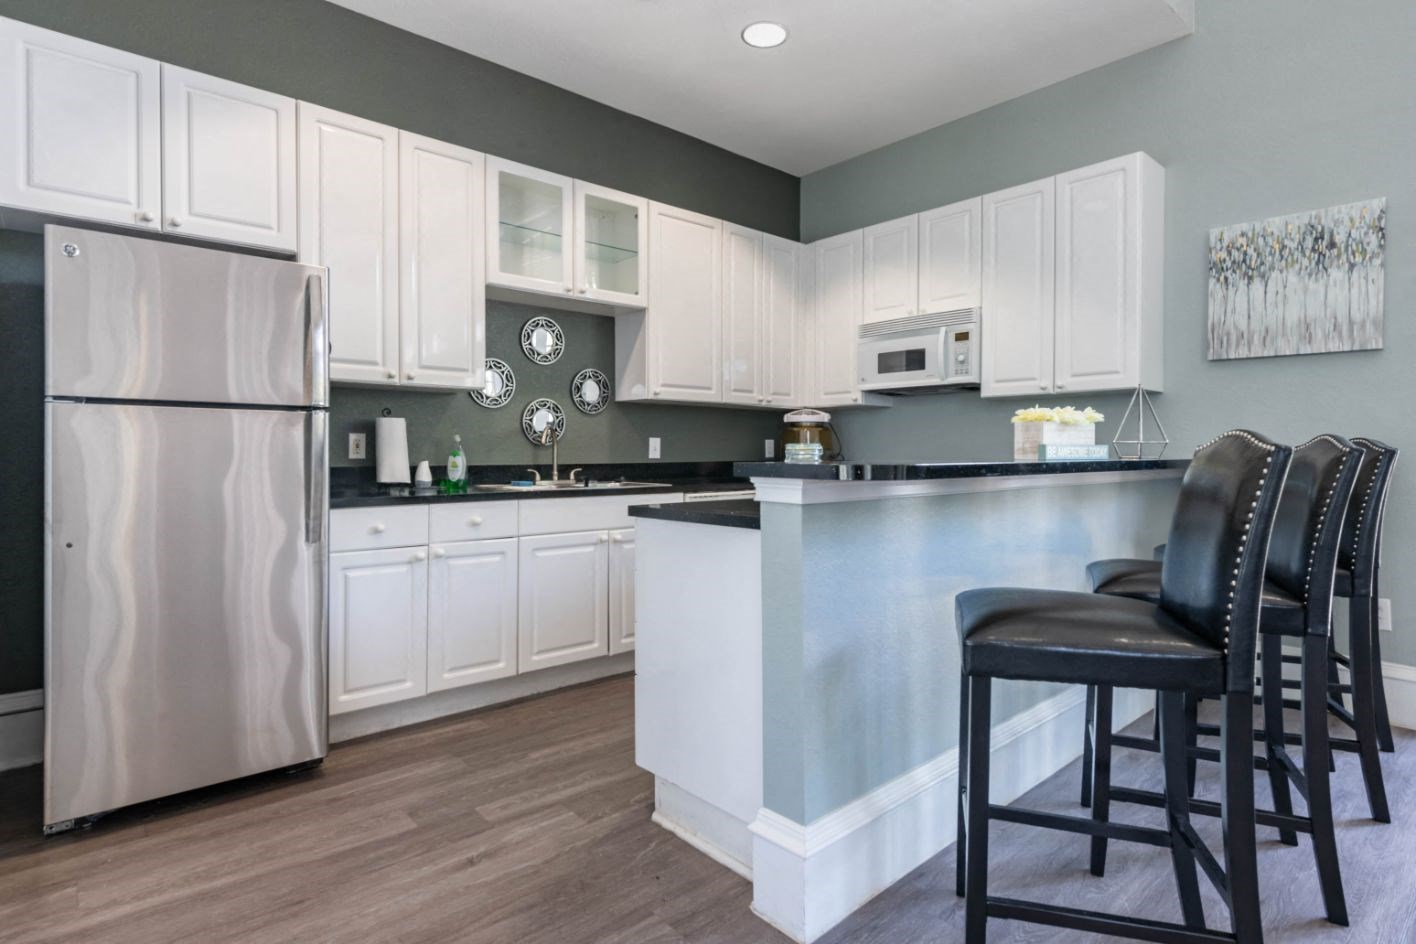 With White Cabinets Black Counters Stainless Steel Appliances